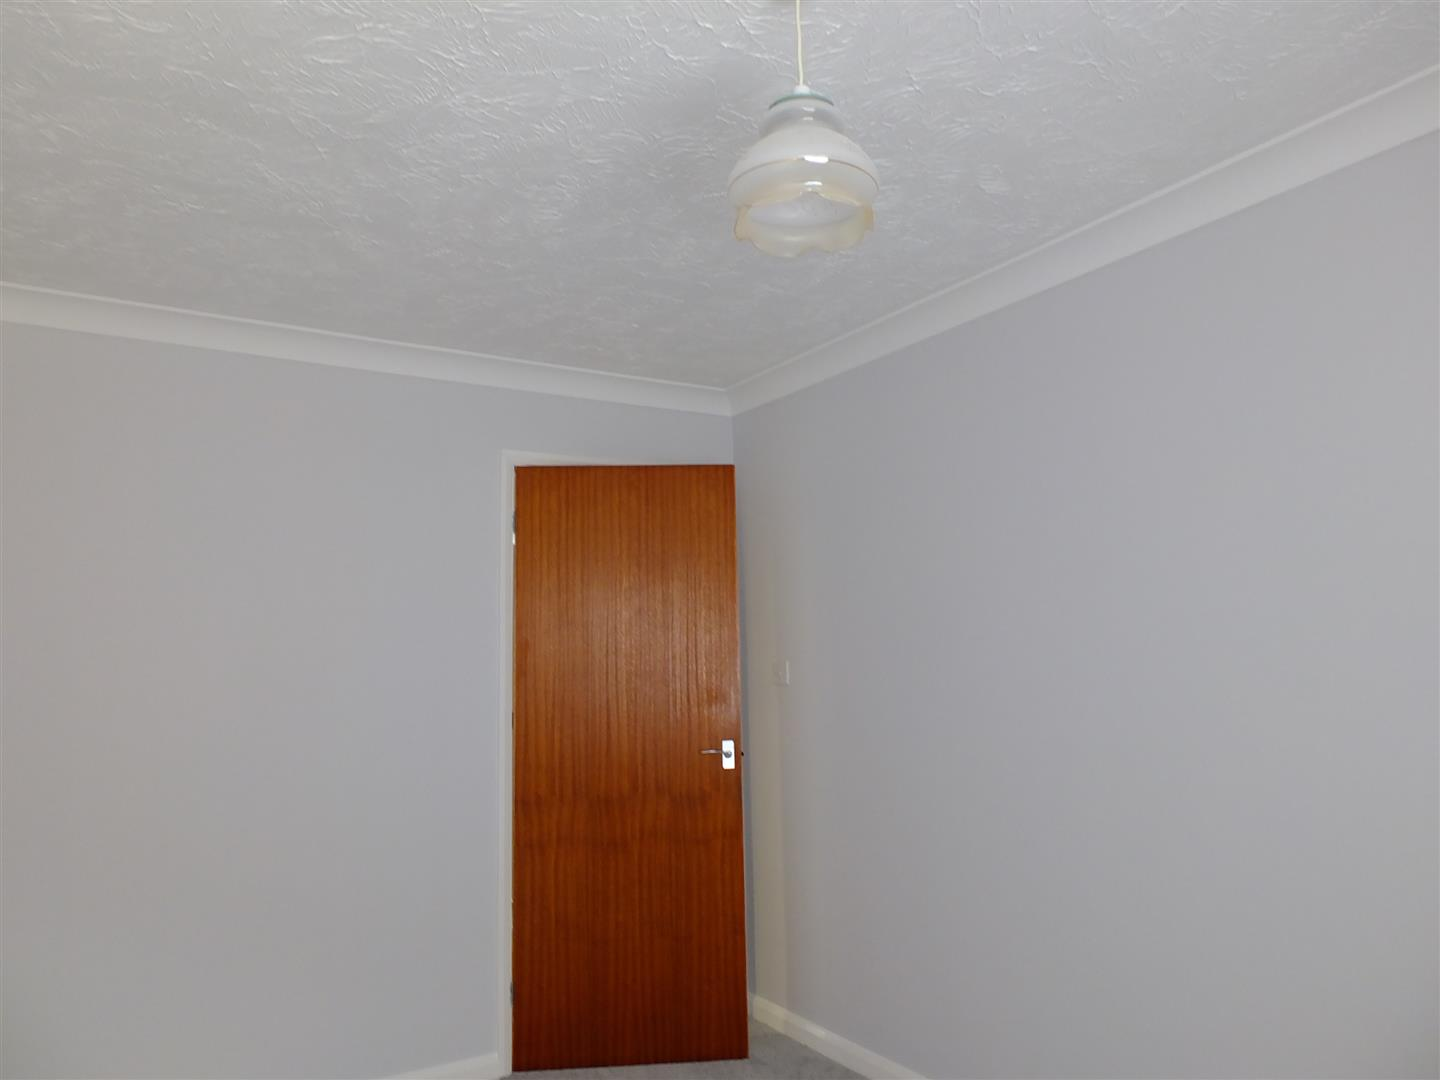 3 bed house to rent in Long Sutton Spalding, PE12 9LZ 17